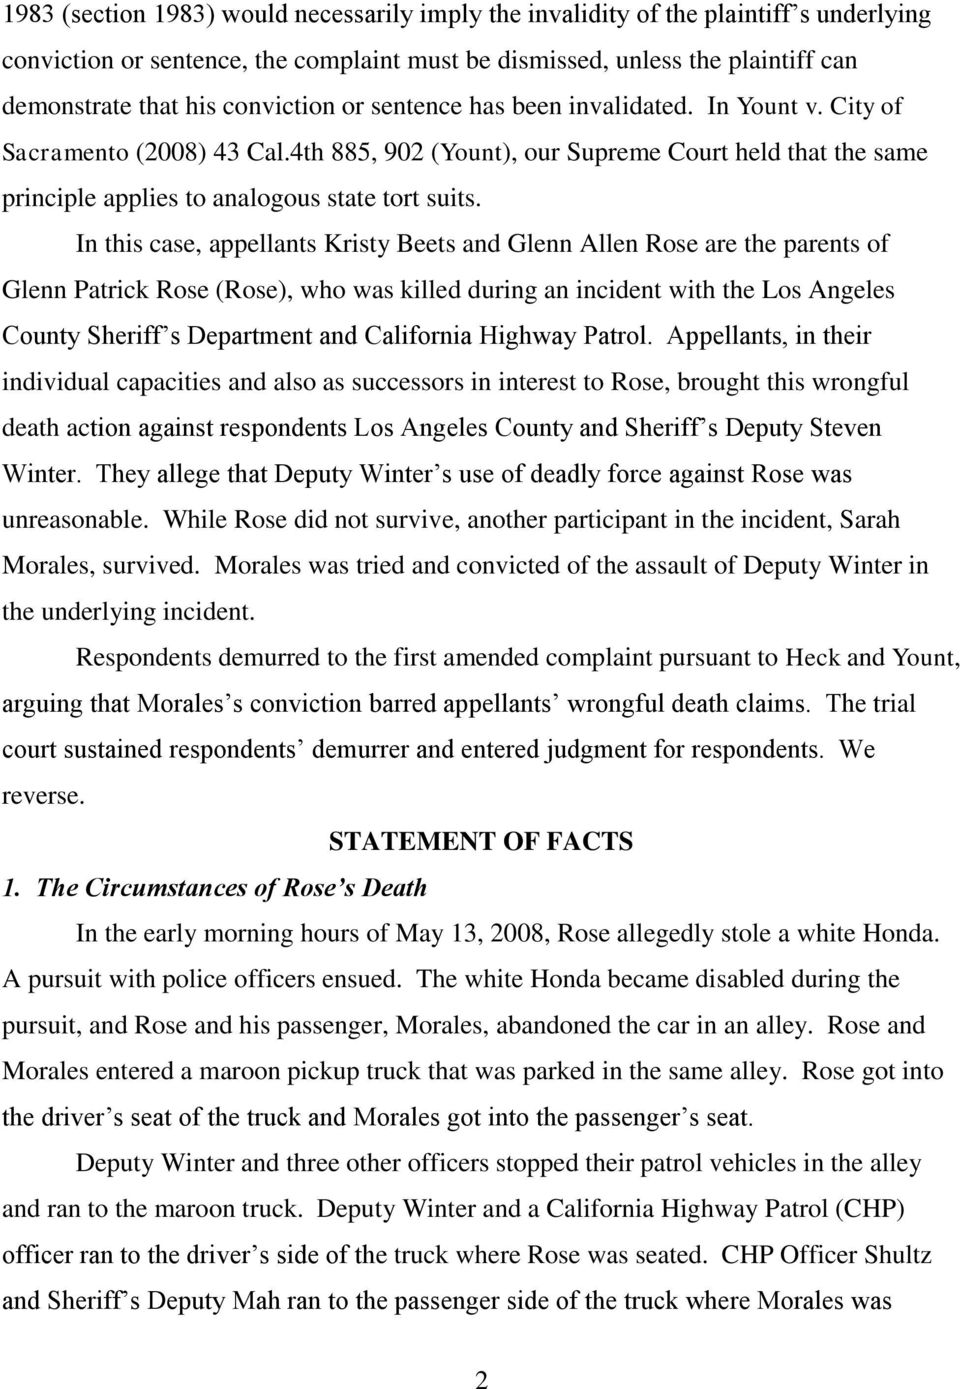 In this case, appellants Kristy Beets and Glenn Allen Rose are the parents of Glenn Patrick Rose (Rose), who was killed during an incident with the Los Angeles County Sheriff s Department and